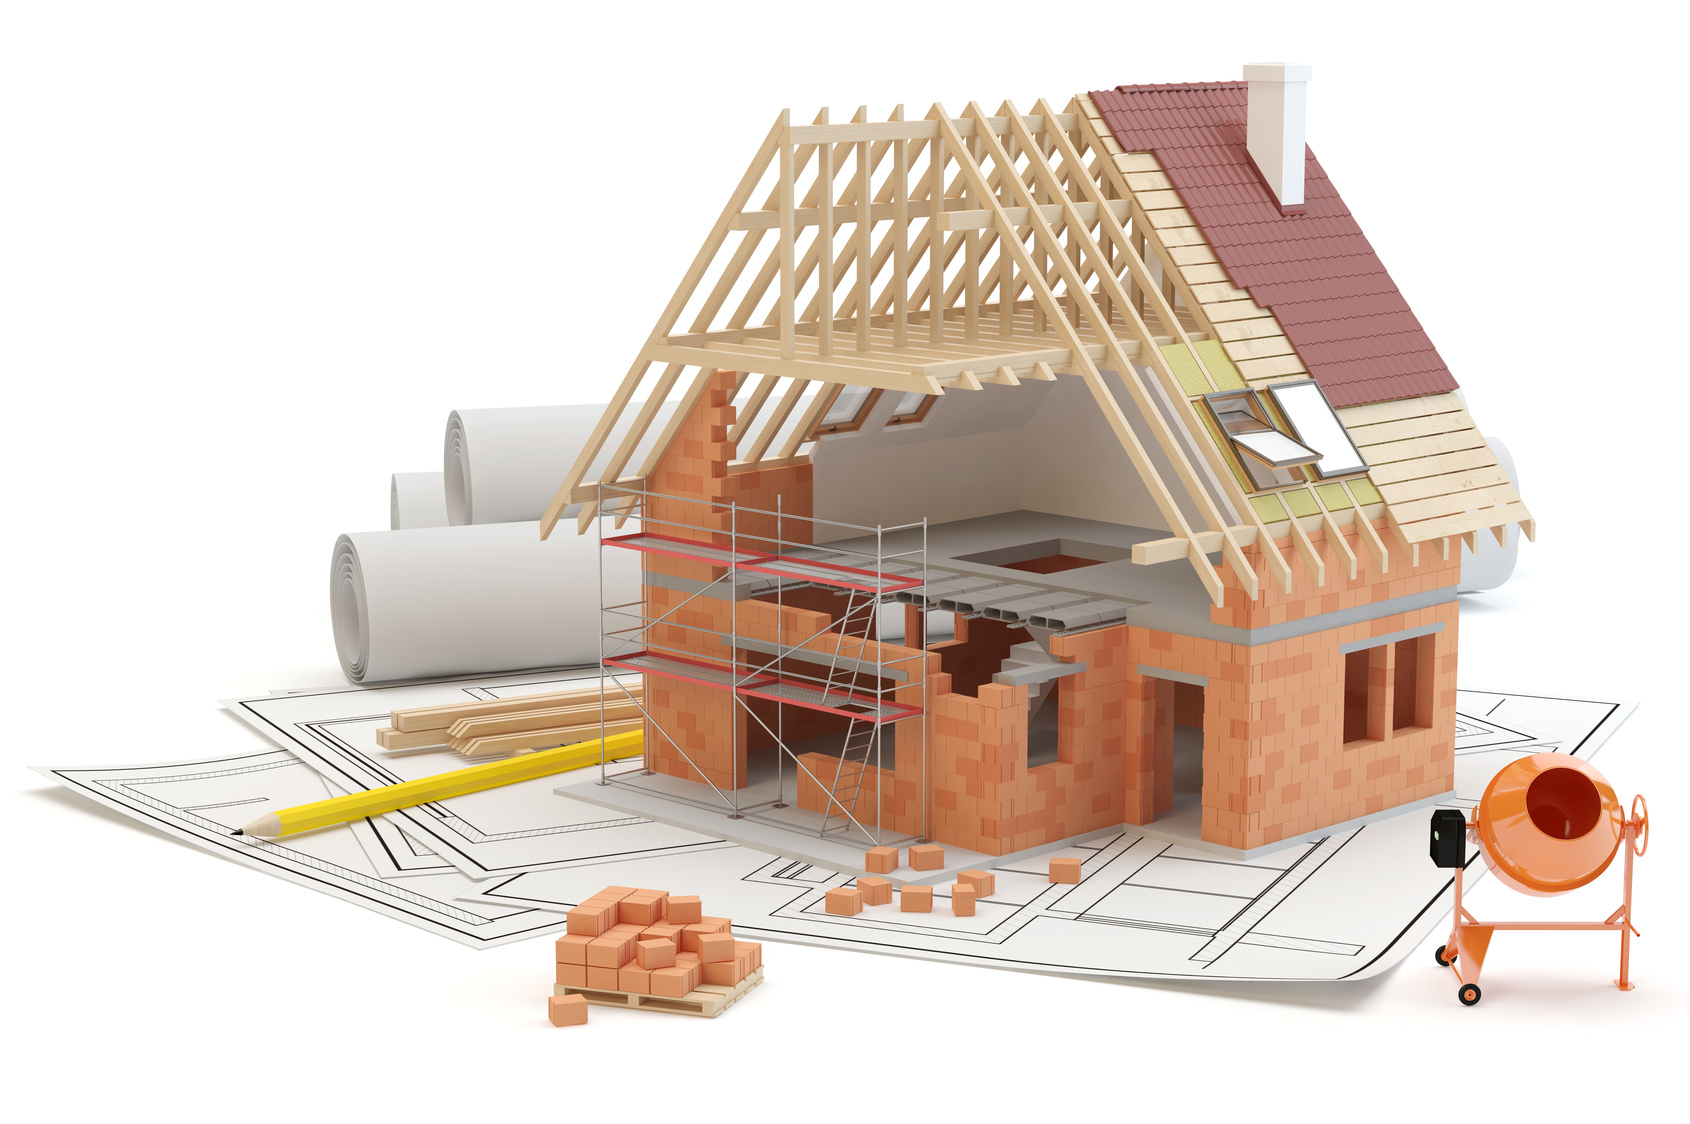 Le prix de construction d une maison for Construction maison 3d